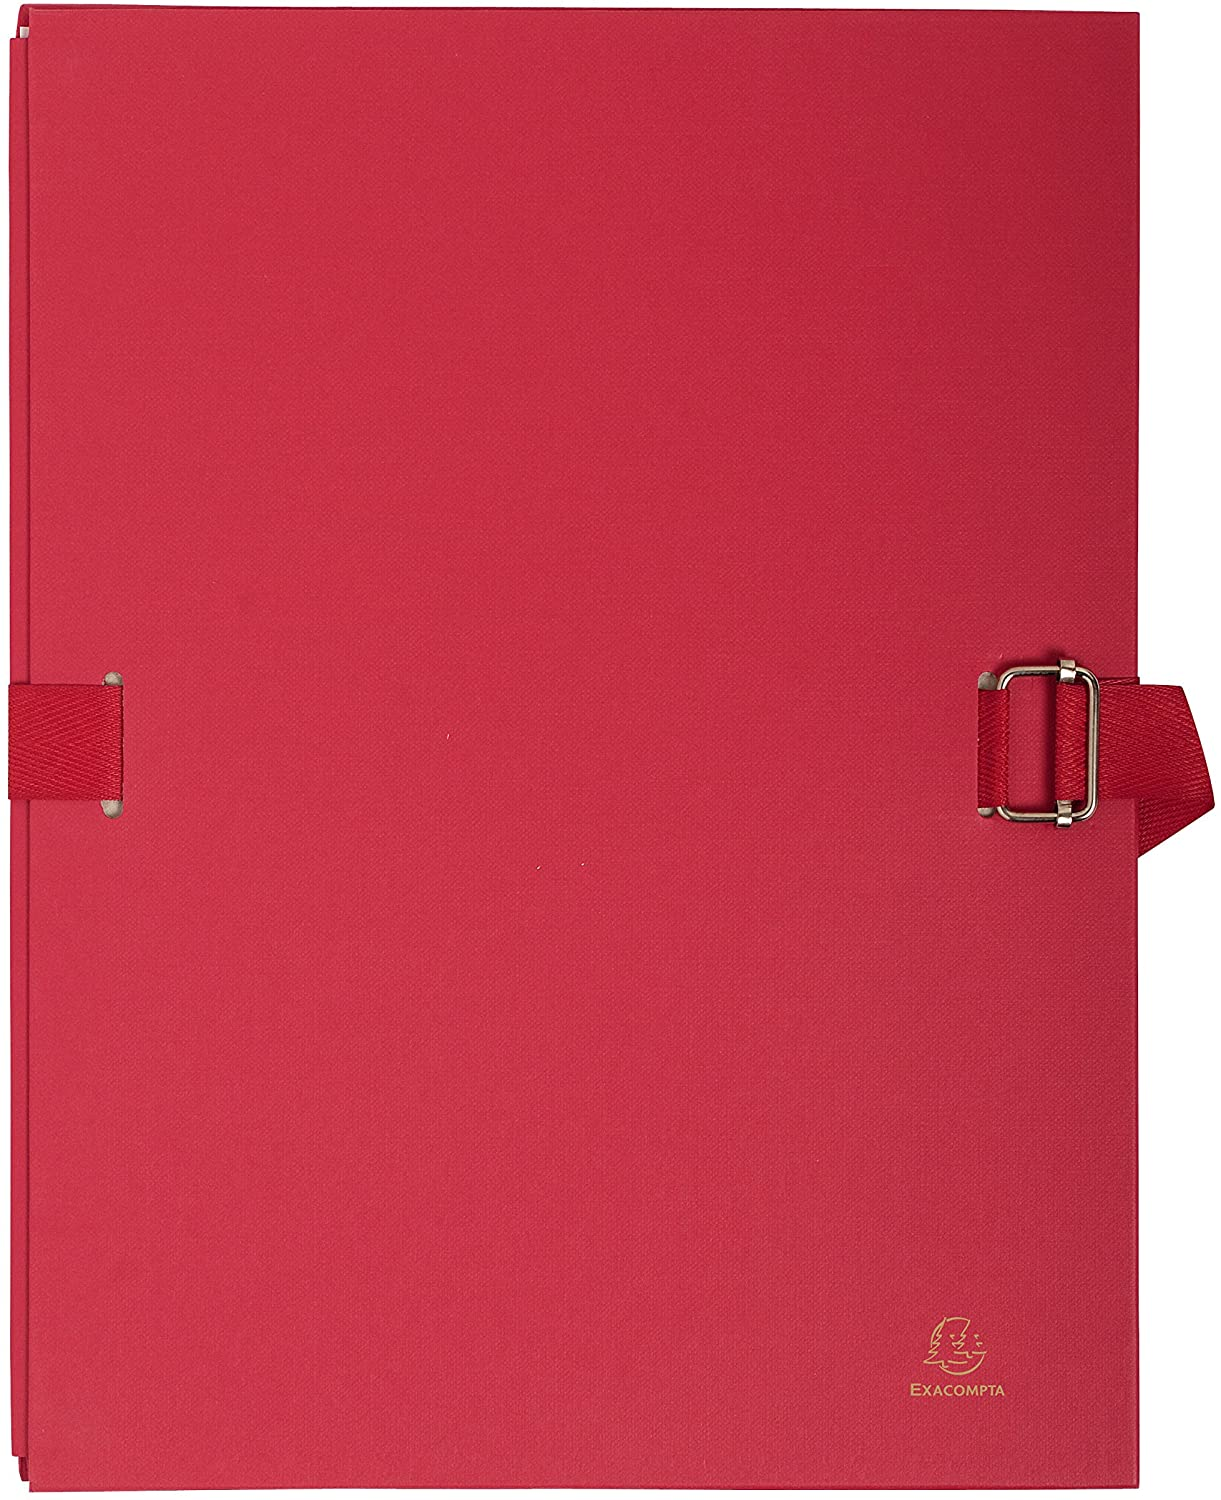 Exacompta 24 x 32 cm Expanding Folder, Expands up to 13 cm - Red